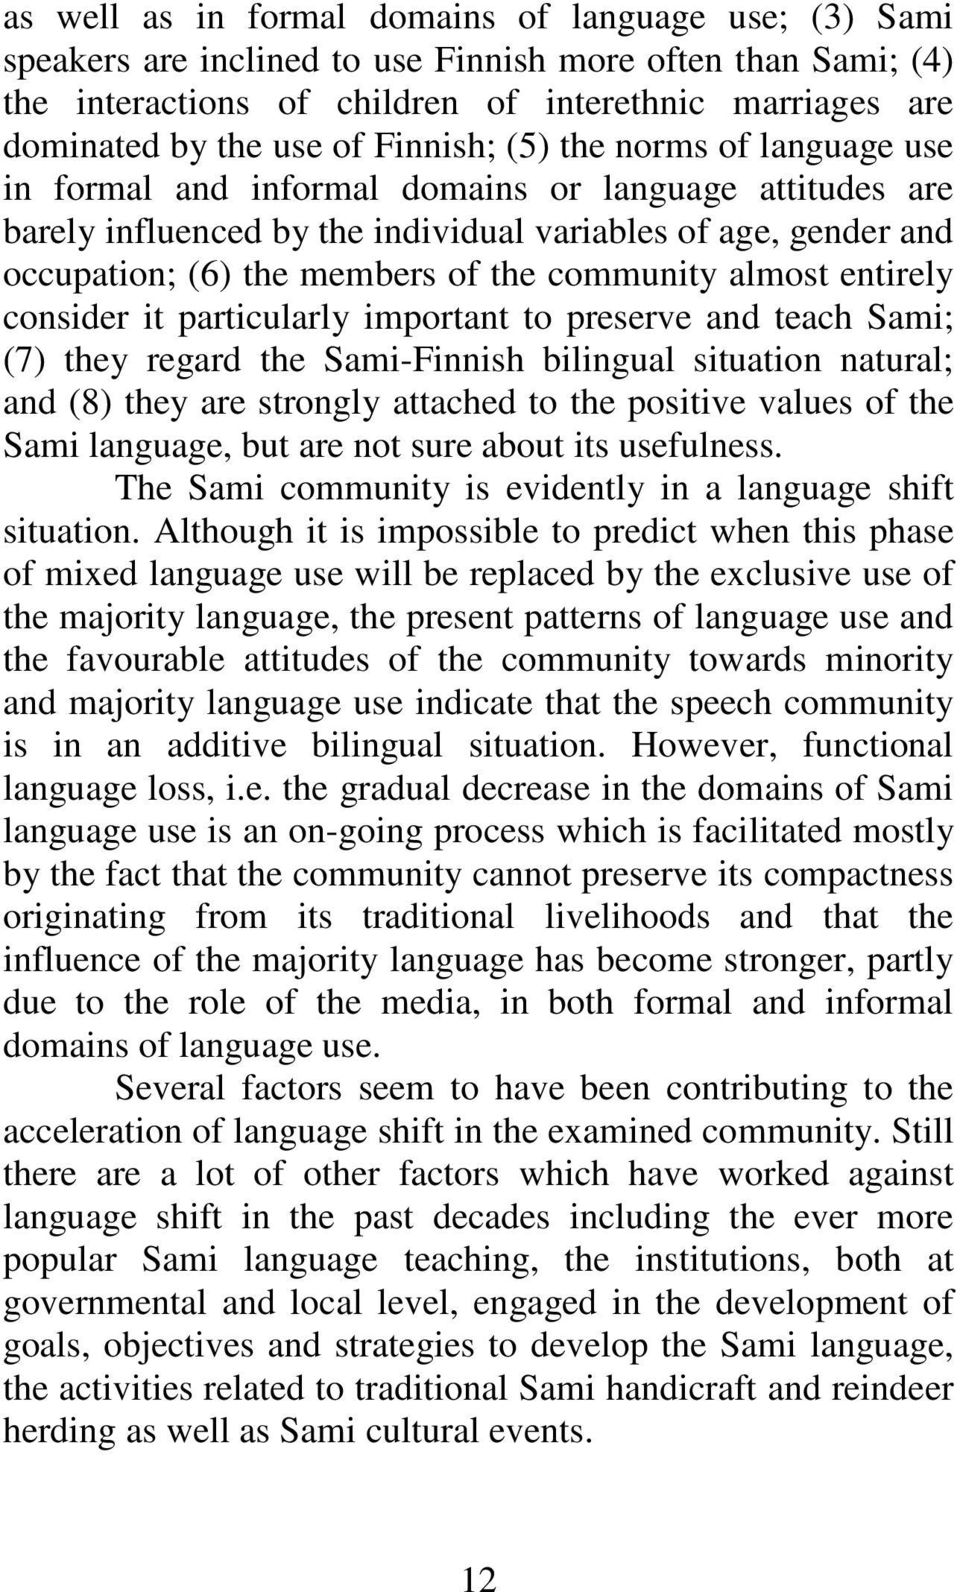 community almost entirely consider it particularly important to preserve and teach Sami; (7) they regard the Sami-Finnish bilingual situation natural; and (8) they are strongly attached to the